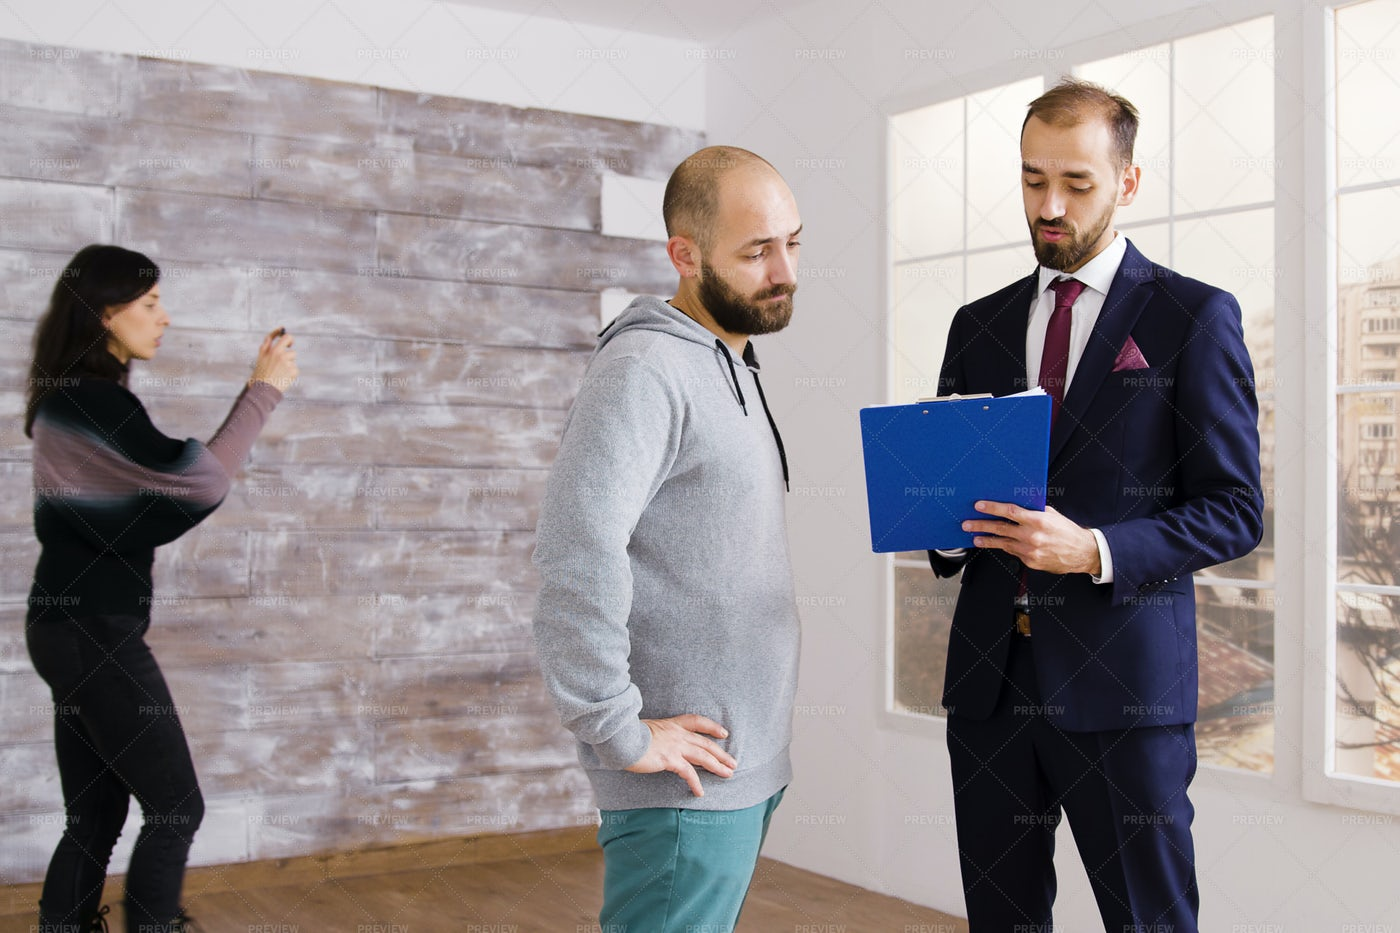 Apartment Veiwing With Agent: Stock Photos